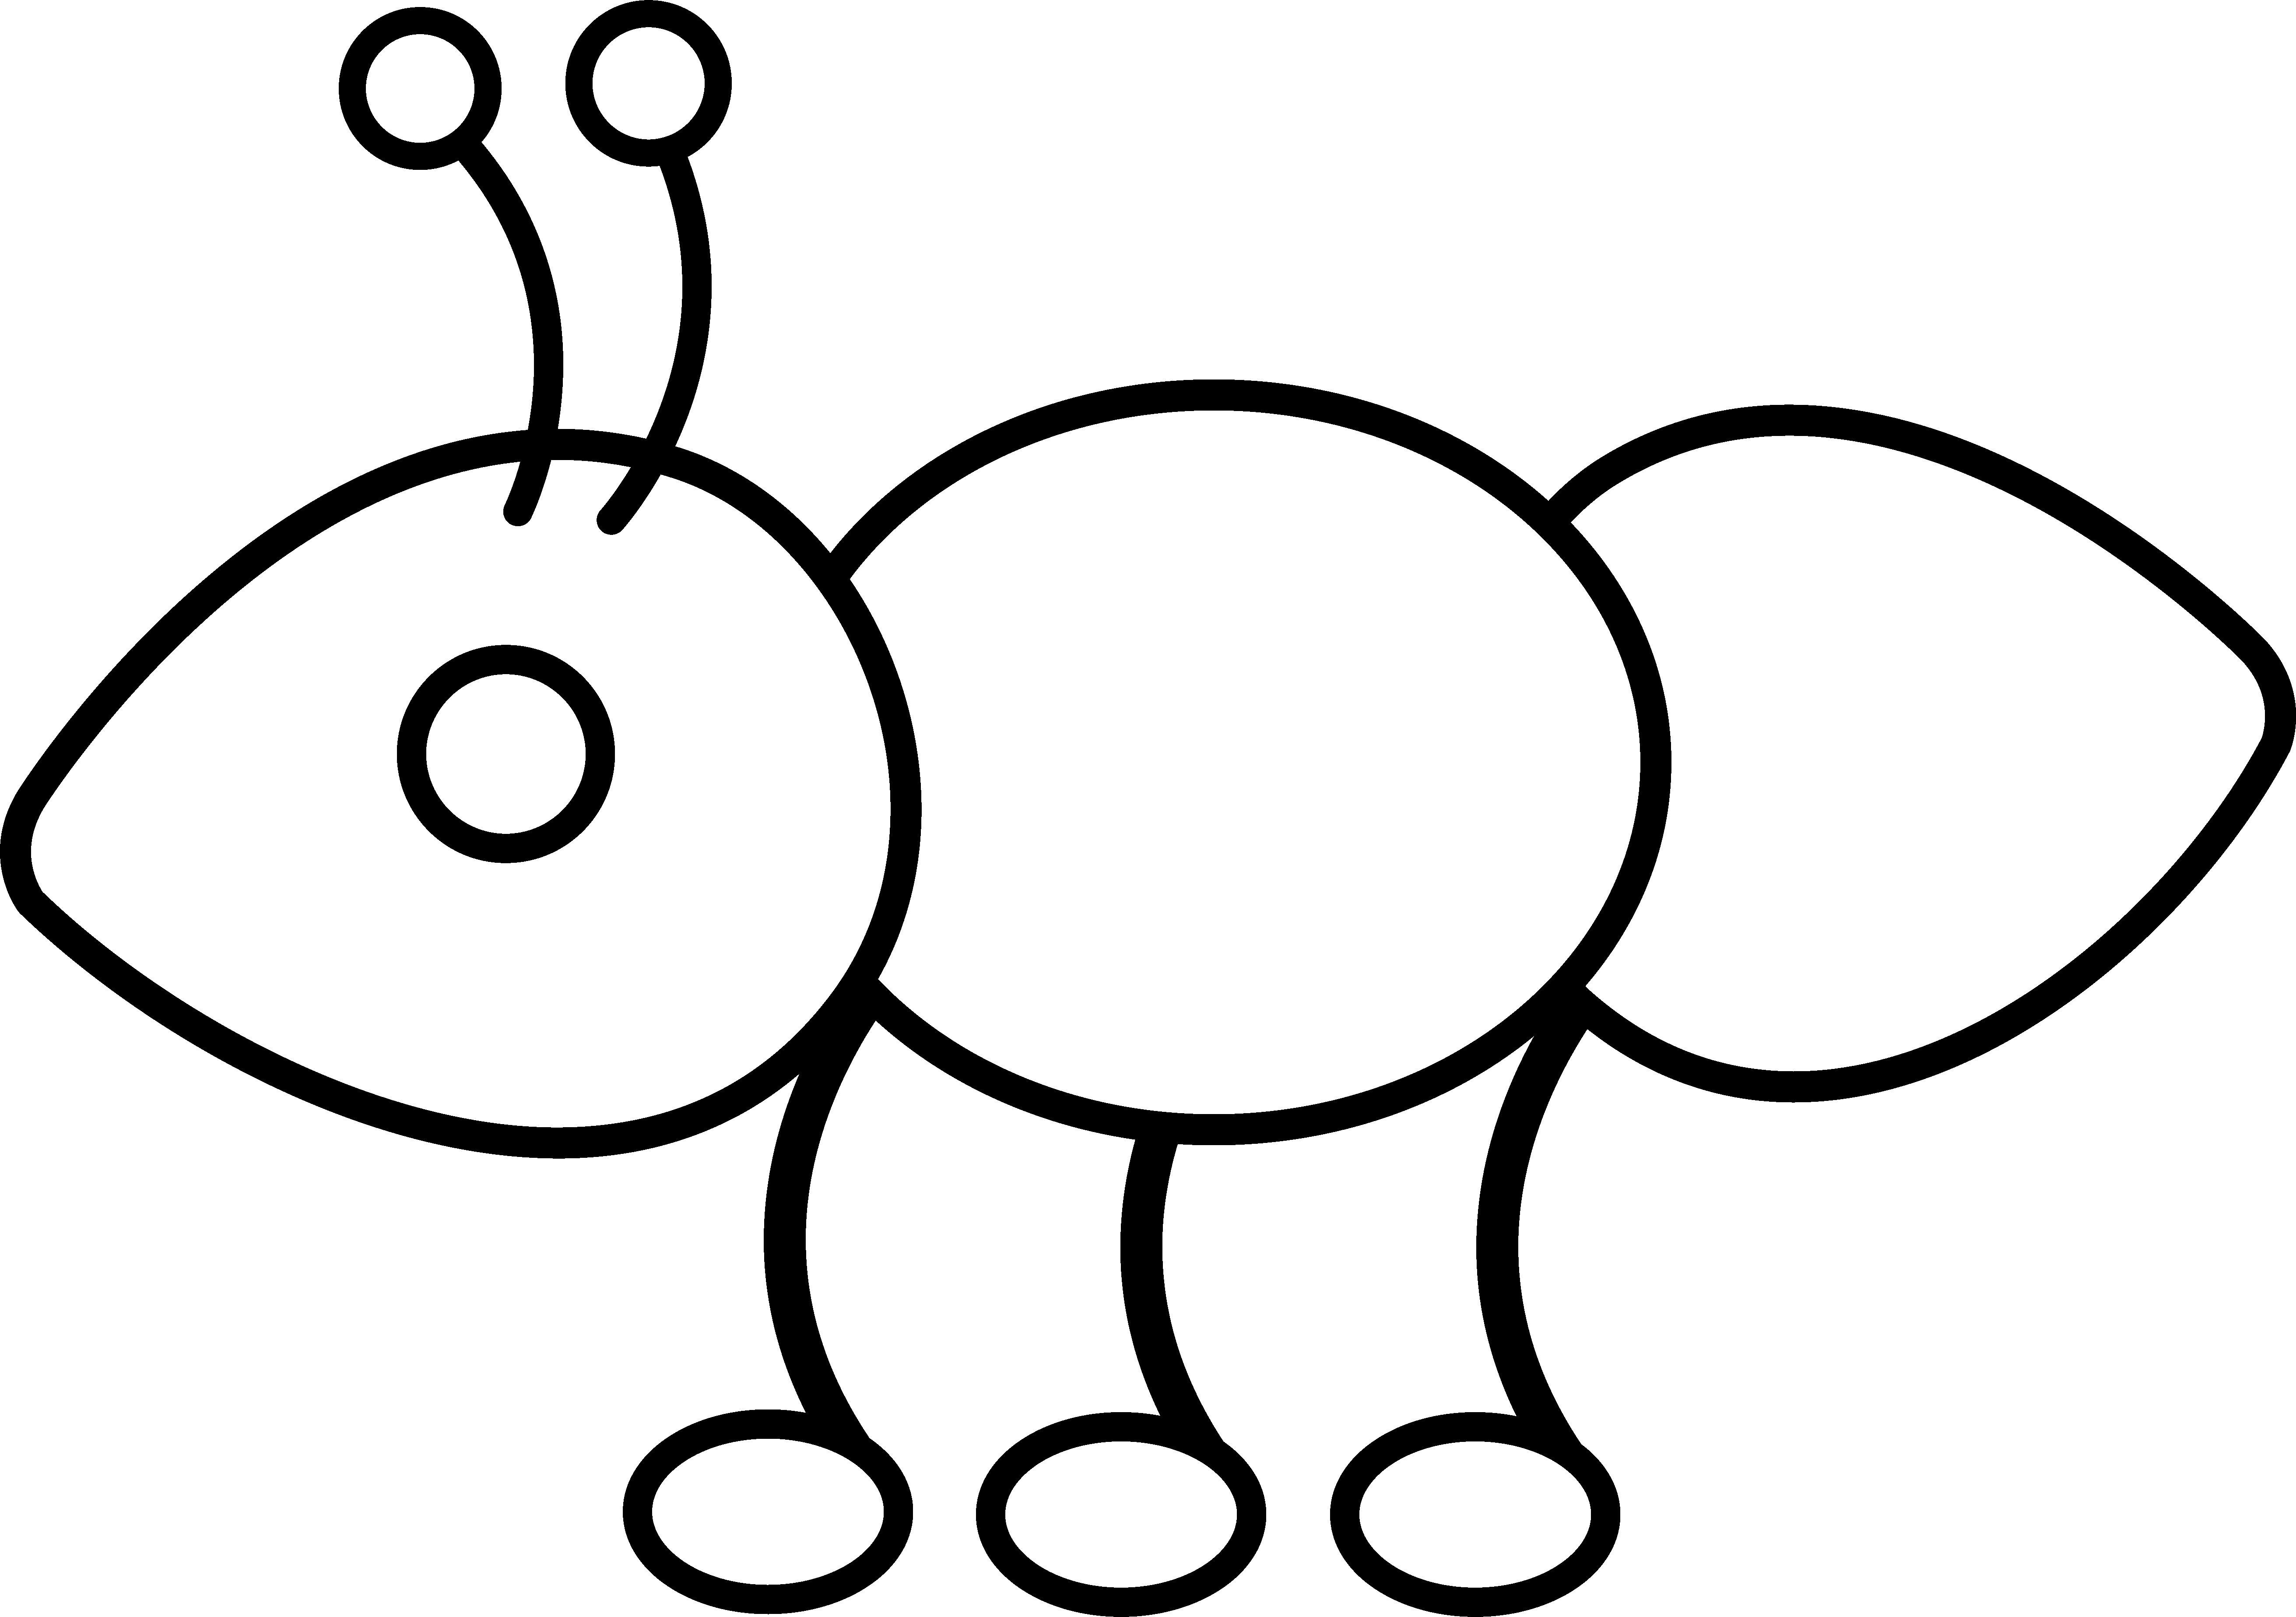 New coloring collection printable. Ant clipart colouring page